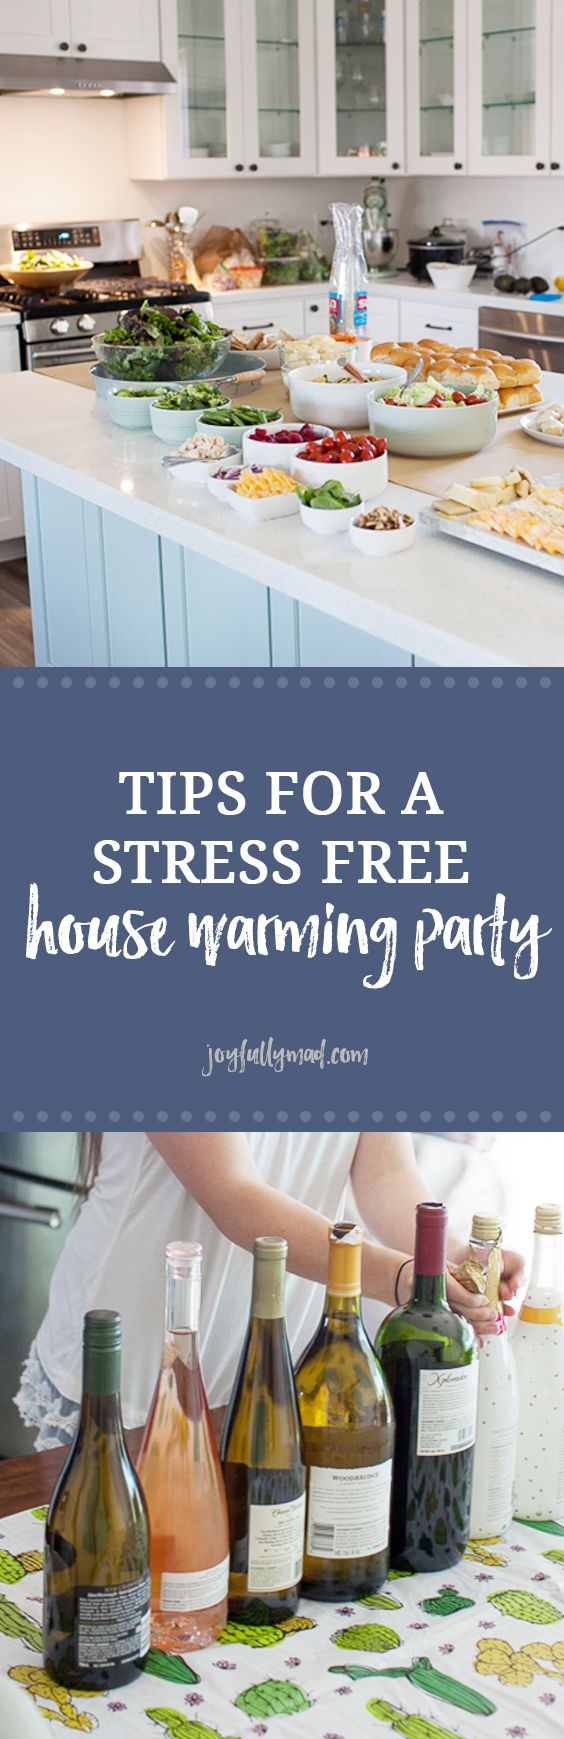 25 Best Ideas About Housewarming Party On Pinterest